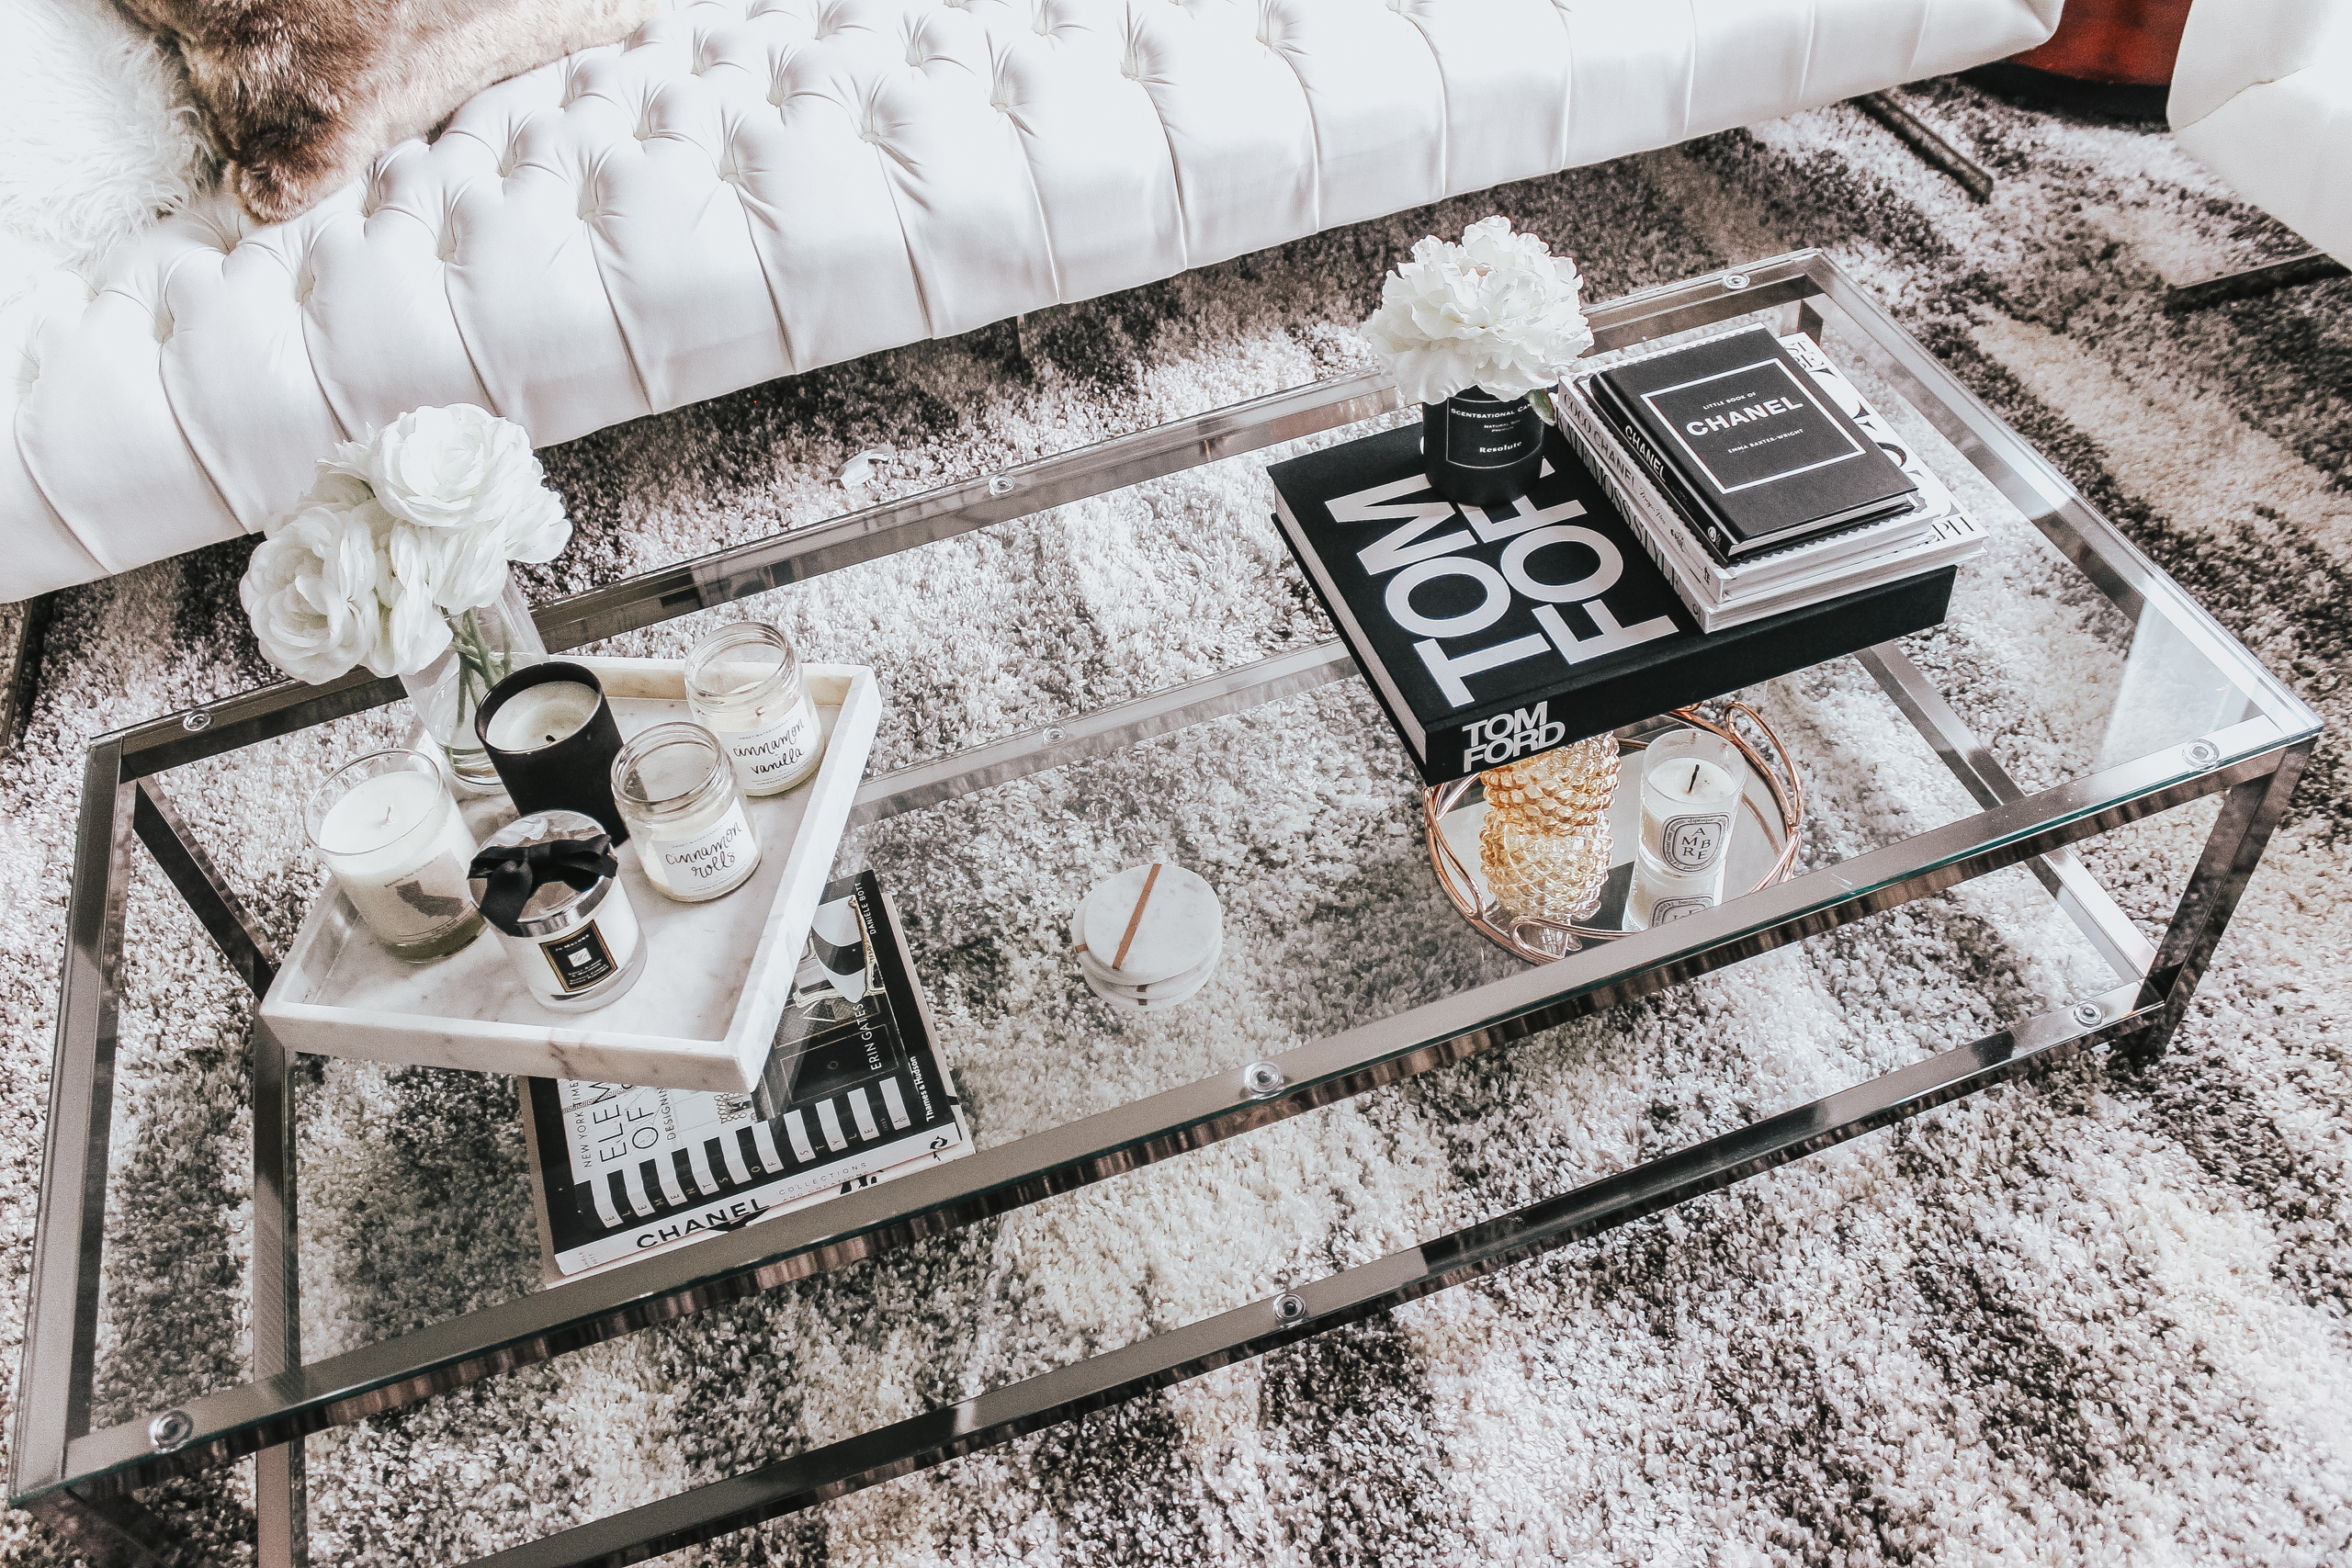 7 Tips For Styling Your Coffee Table | Coffee Table Styling | Coffee Table Books | Neutral Living Room | Home Decor | Blondie in the City by Hayley Larue